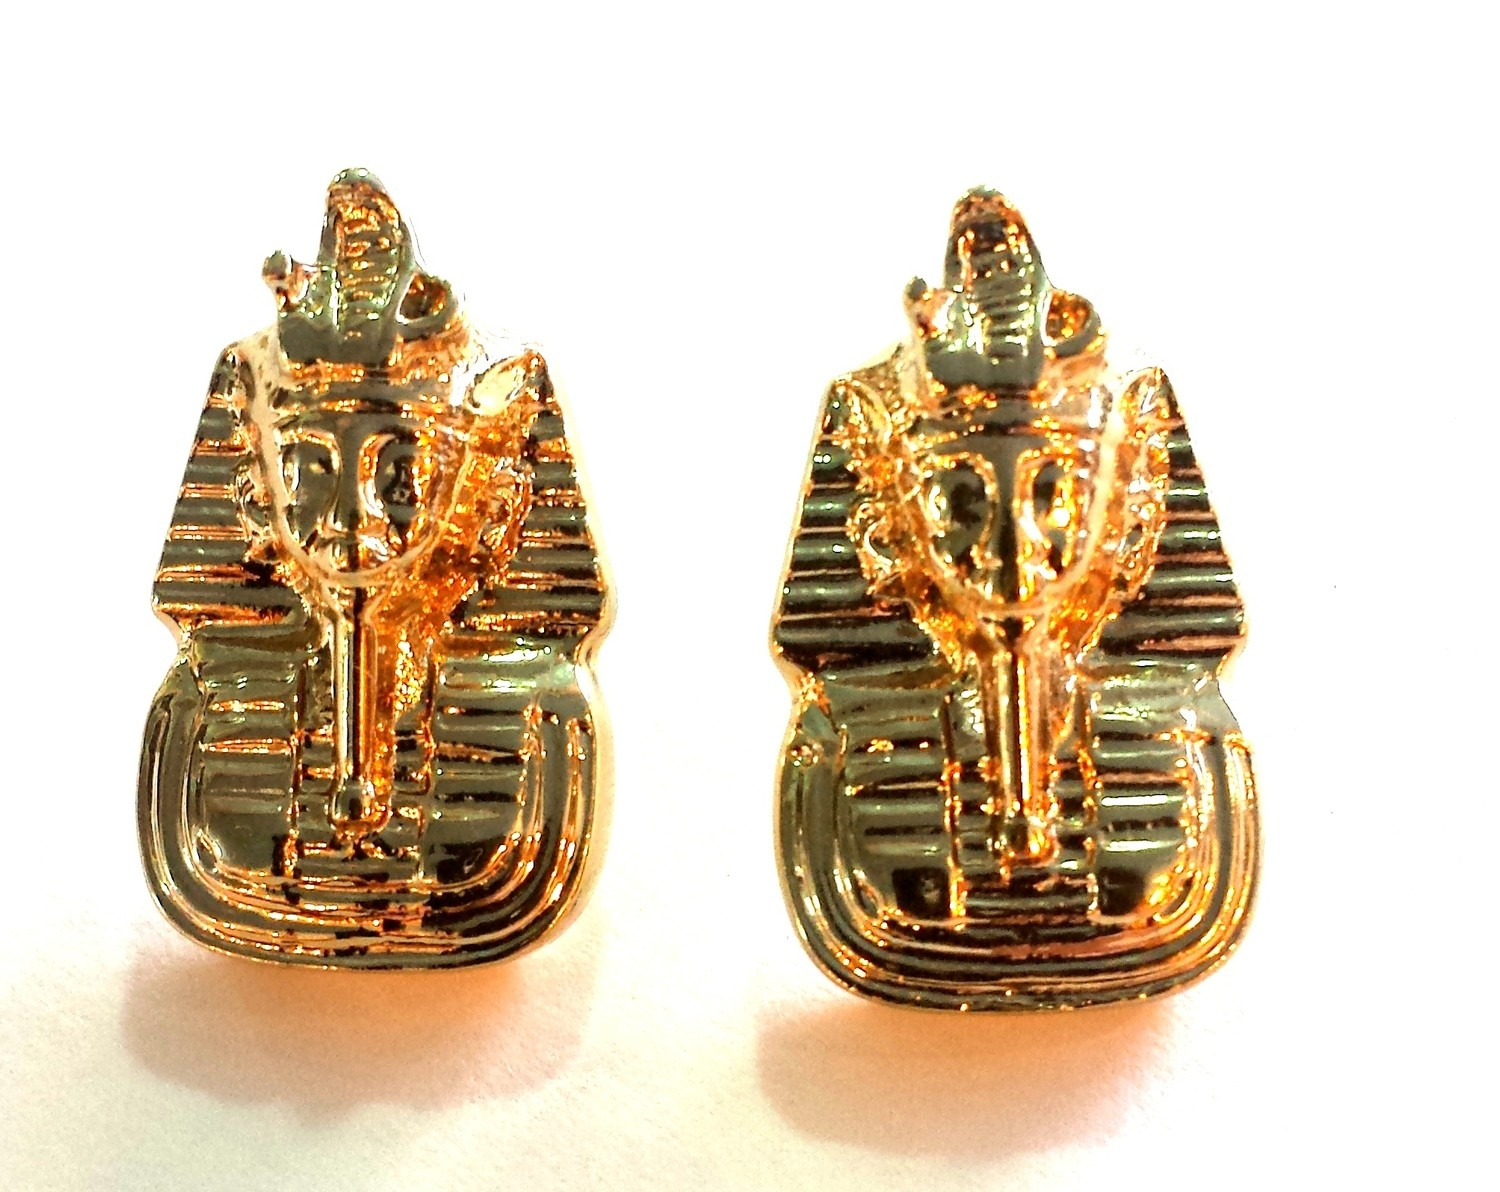 King Tut Stud Earrings